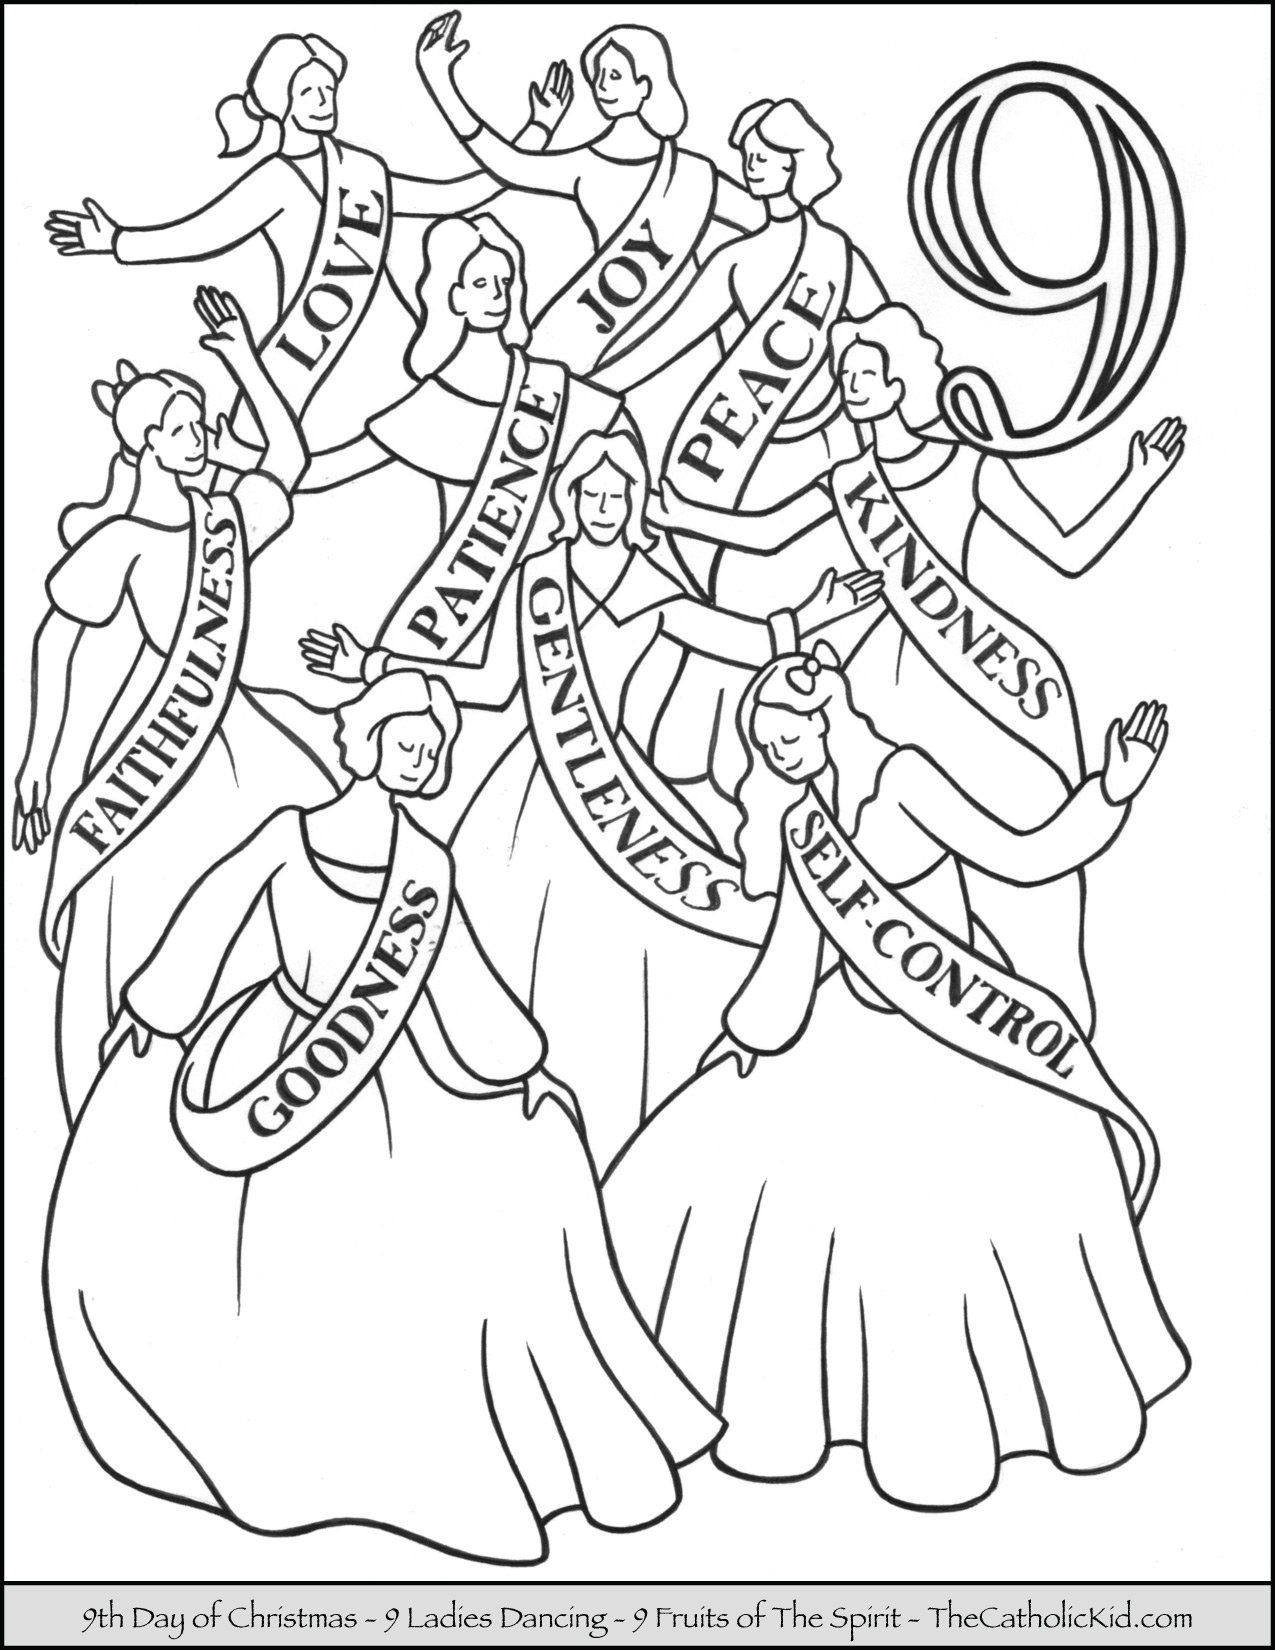 Ninth Day of Christmas Ladies Dancing Coloring Page